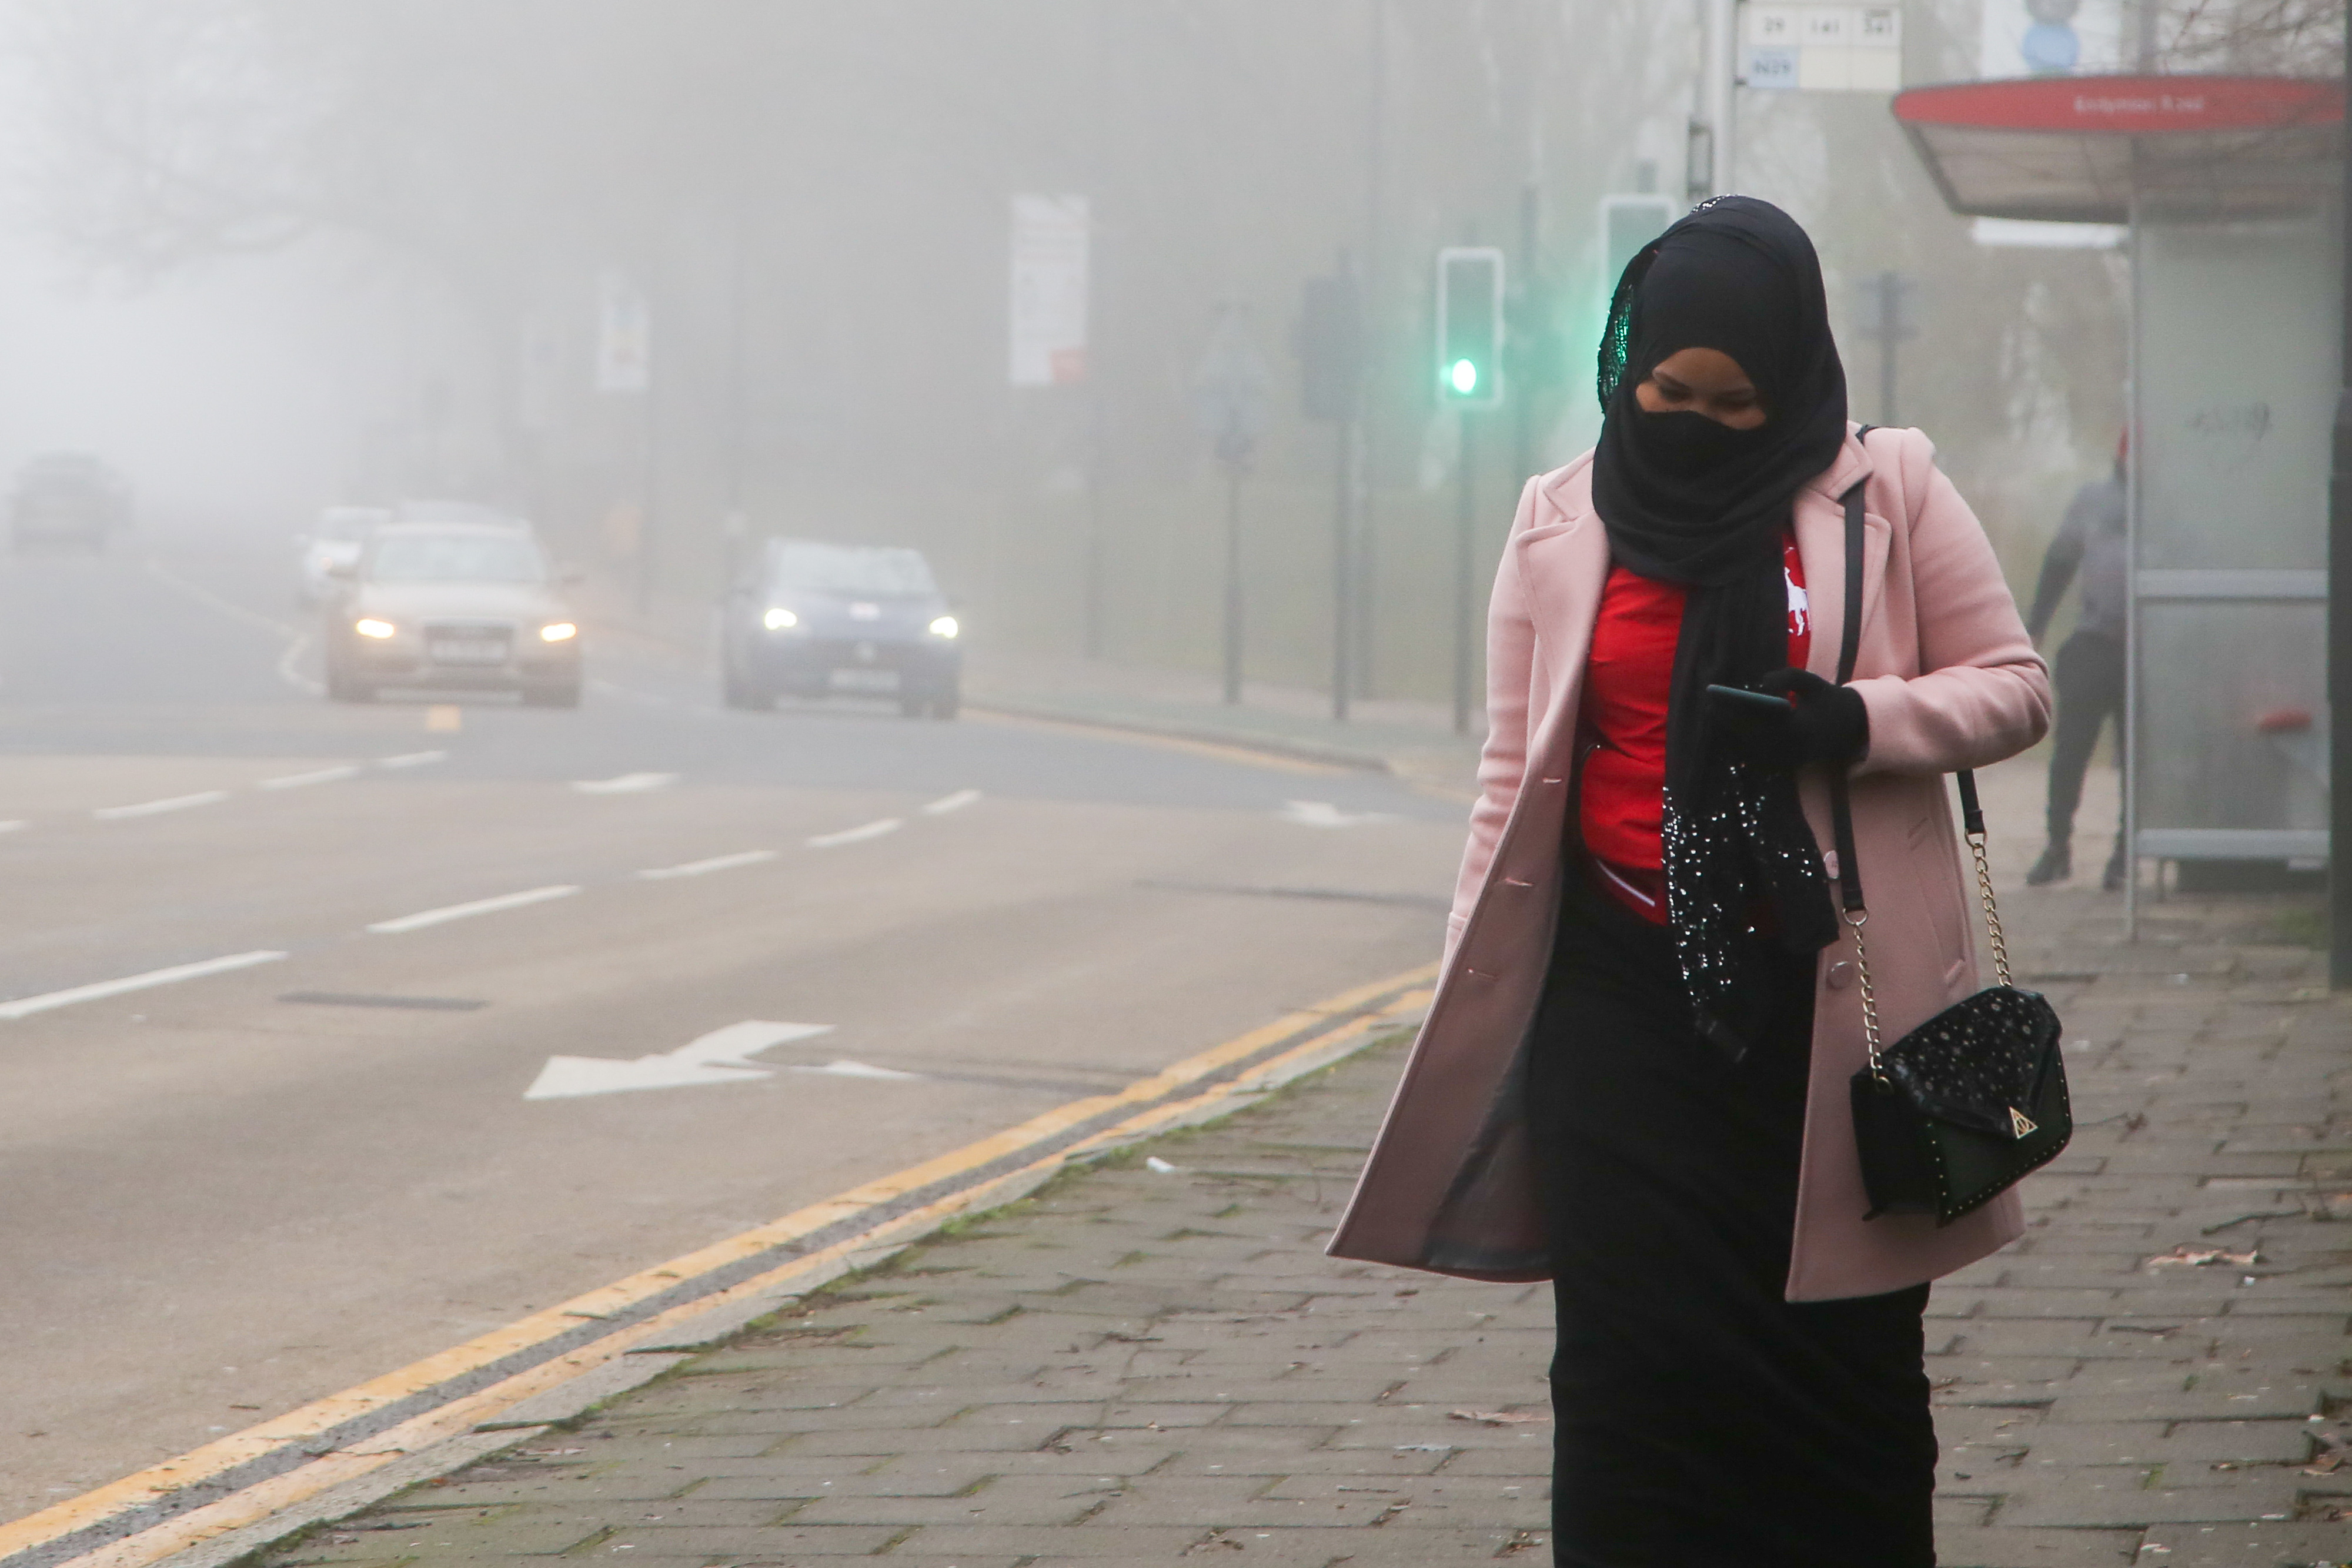 A woman wearing a face mask walks on the street on a foggy morning, as many parts of the UK are now in Tier 4 COVID-19 restrictions. The UK has recorded its highest daily rise in coronavirus cases since the pandemic began with 41,385 positive tests. Prime Minister Boris Johnson hasn't ruled out a national lockdown in the New Year. (Photo by Dinendra Haria / SOPA Images/Sipa USA)